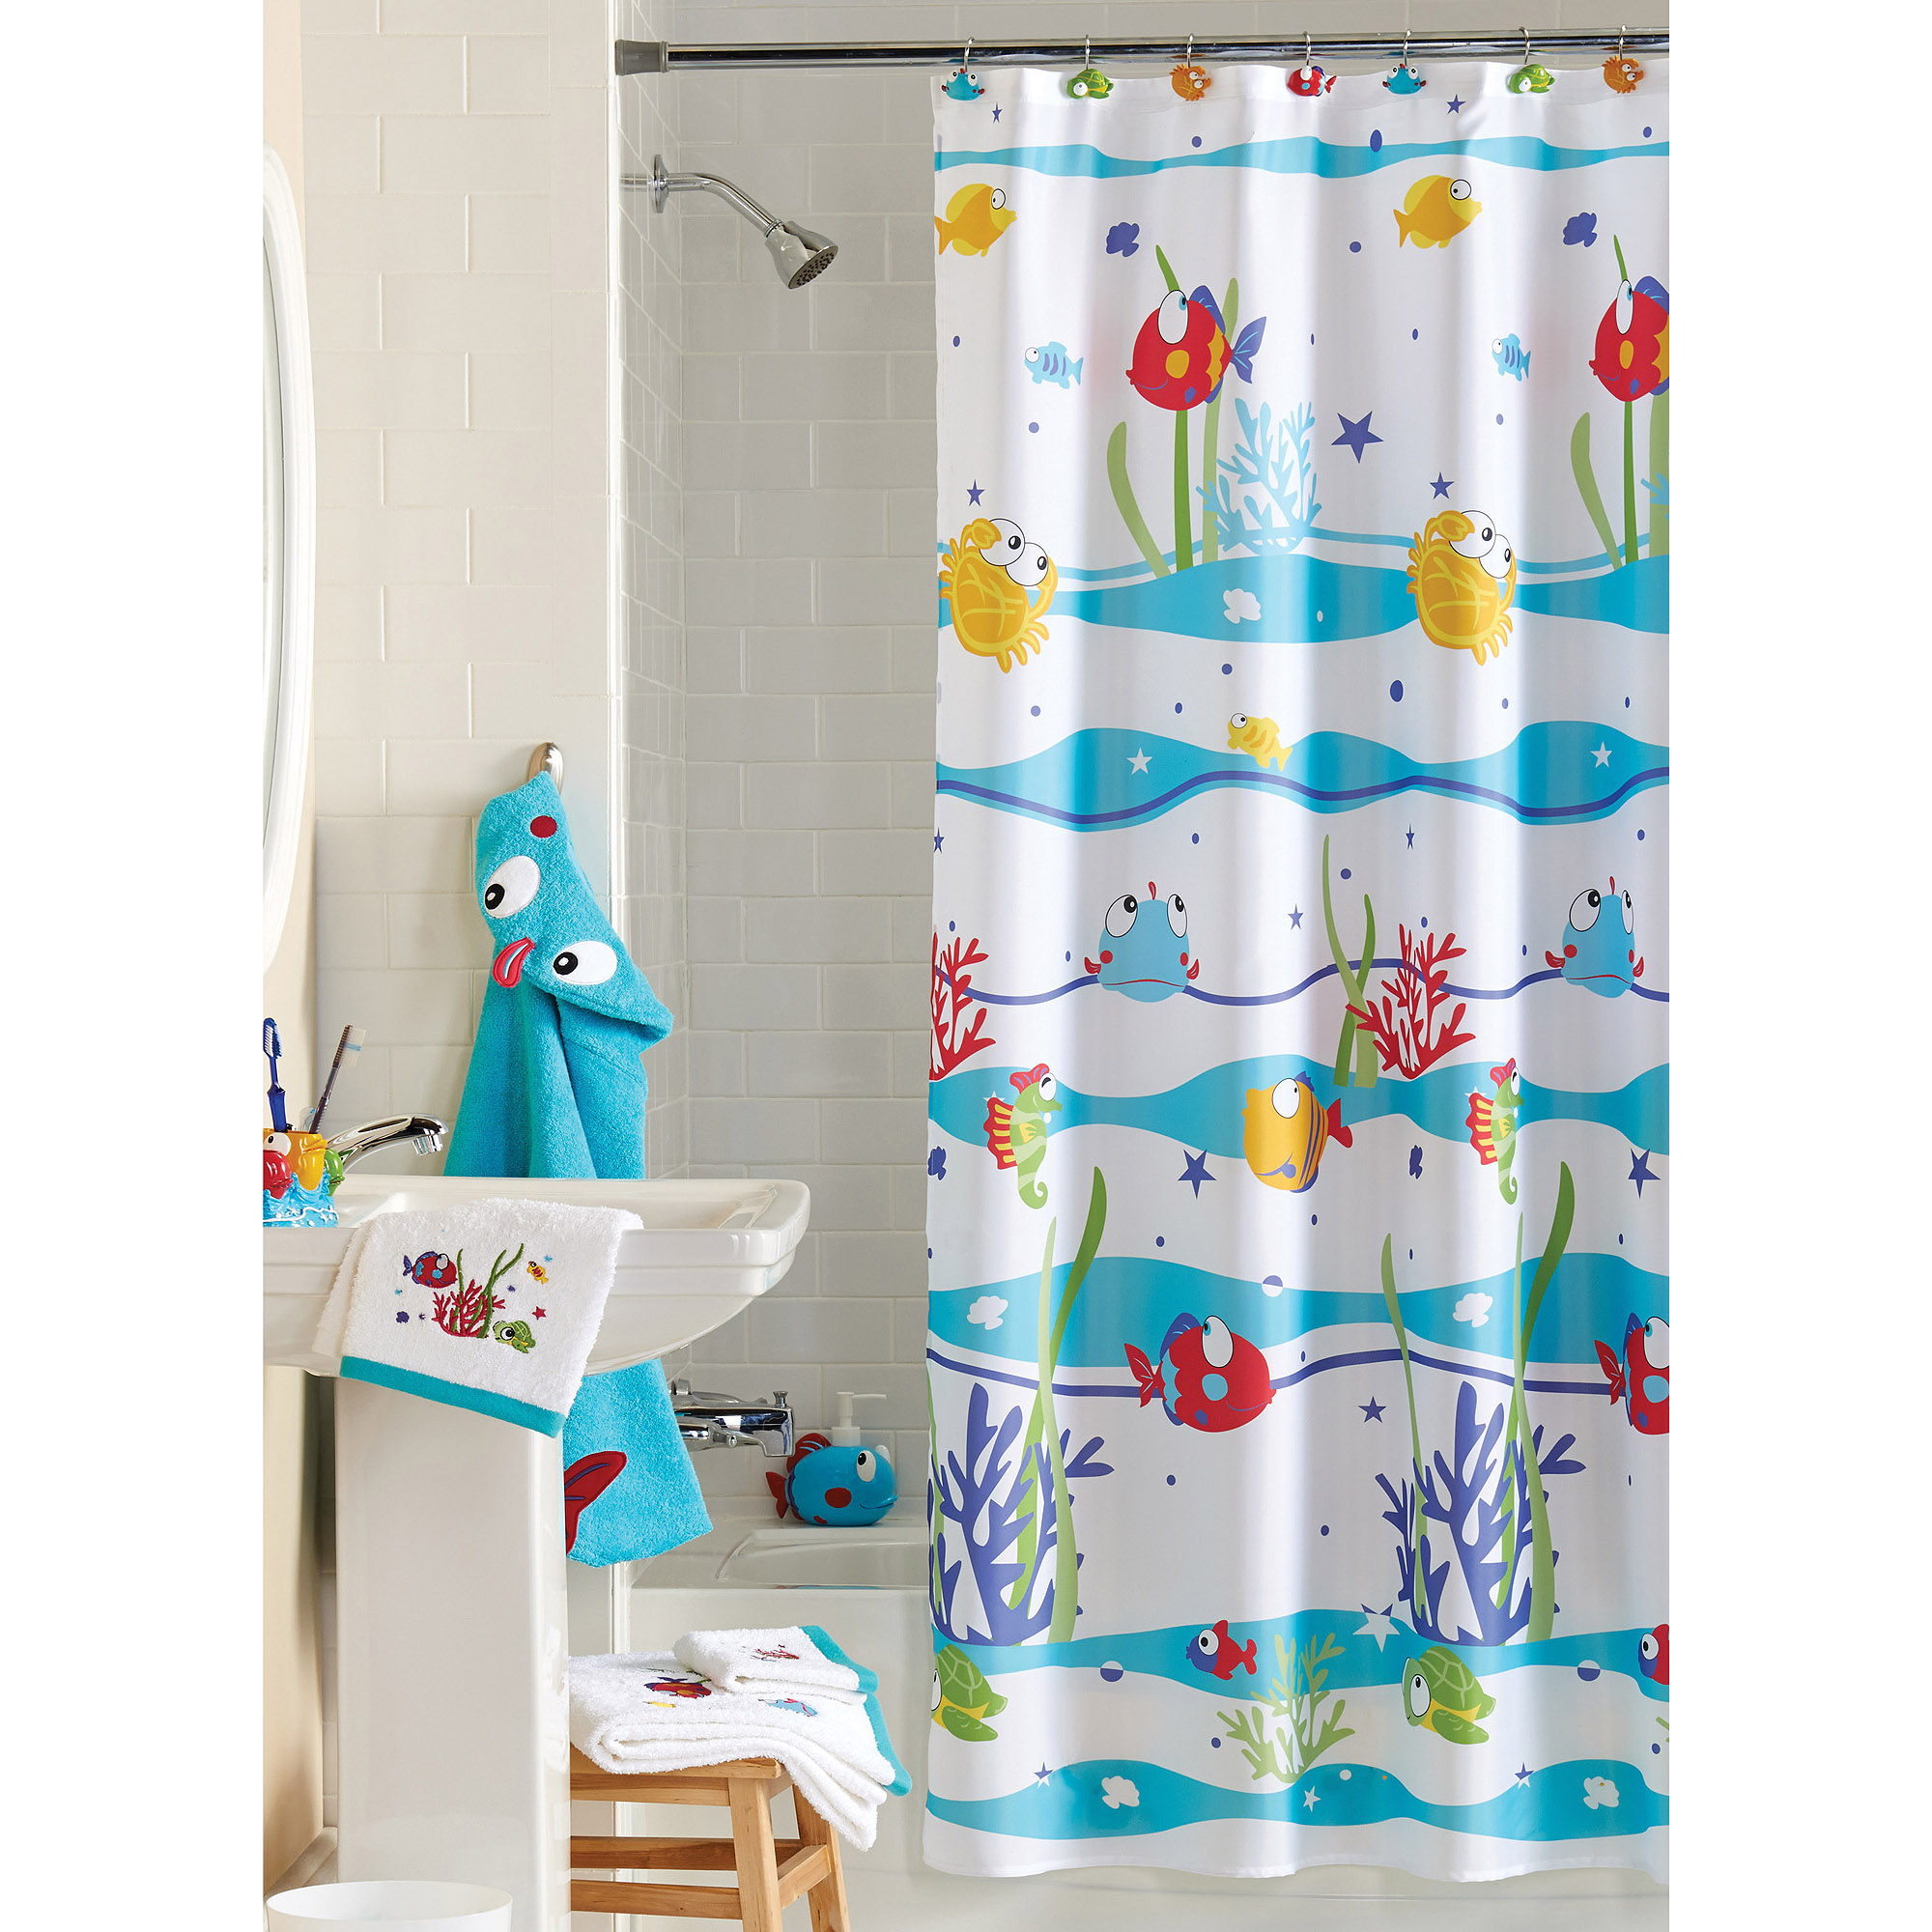 Amazing Mainstays Somethingu0027s Fishy Shower Curtain   Walmart.com